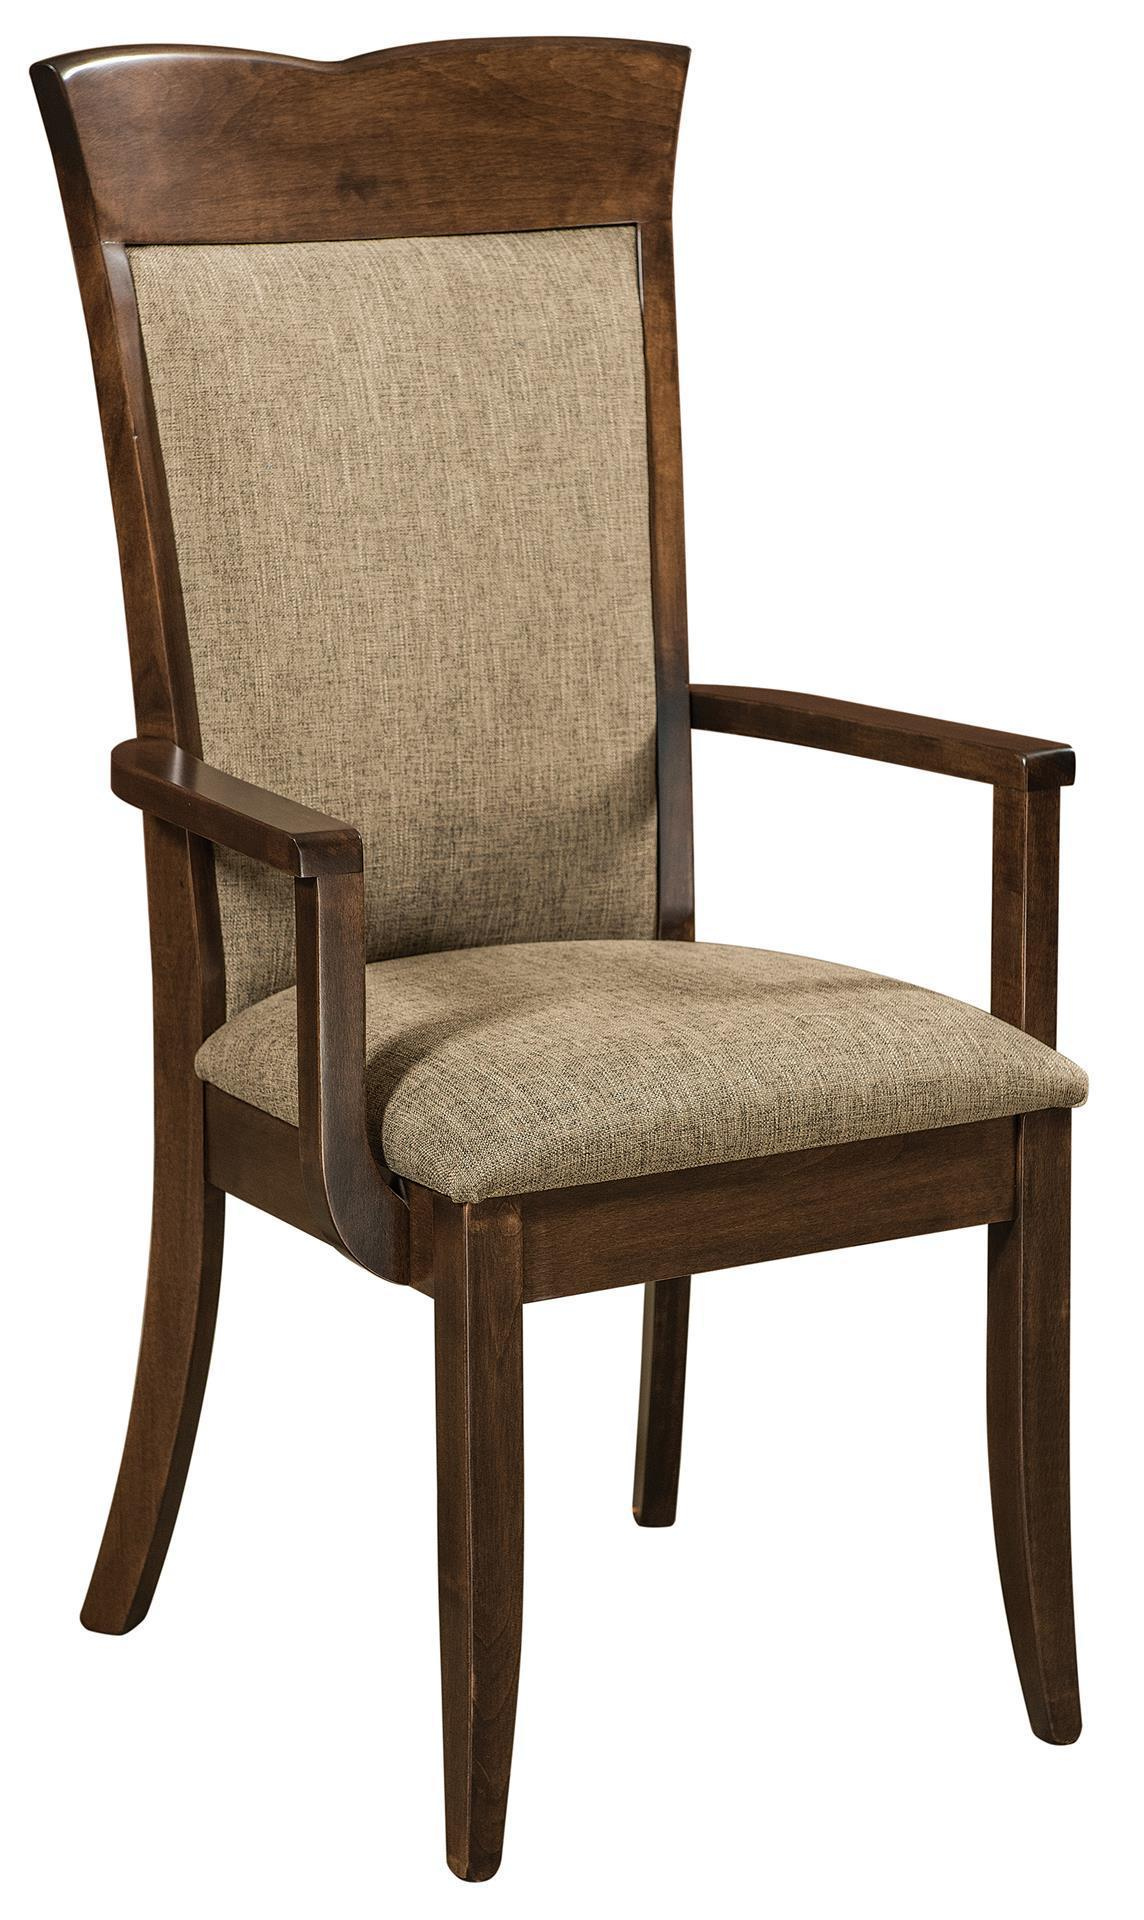 Picture of: Santa Fe Upholstered Chair From Dutchcrafters Amish Furniture Store